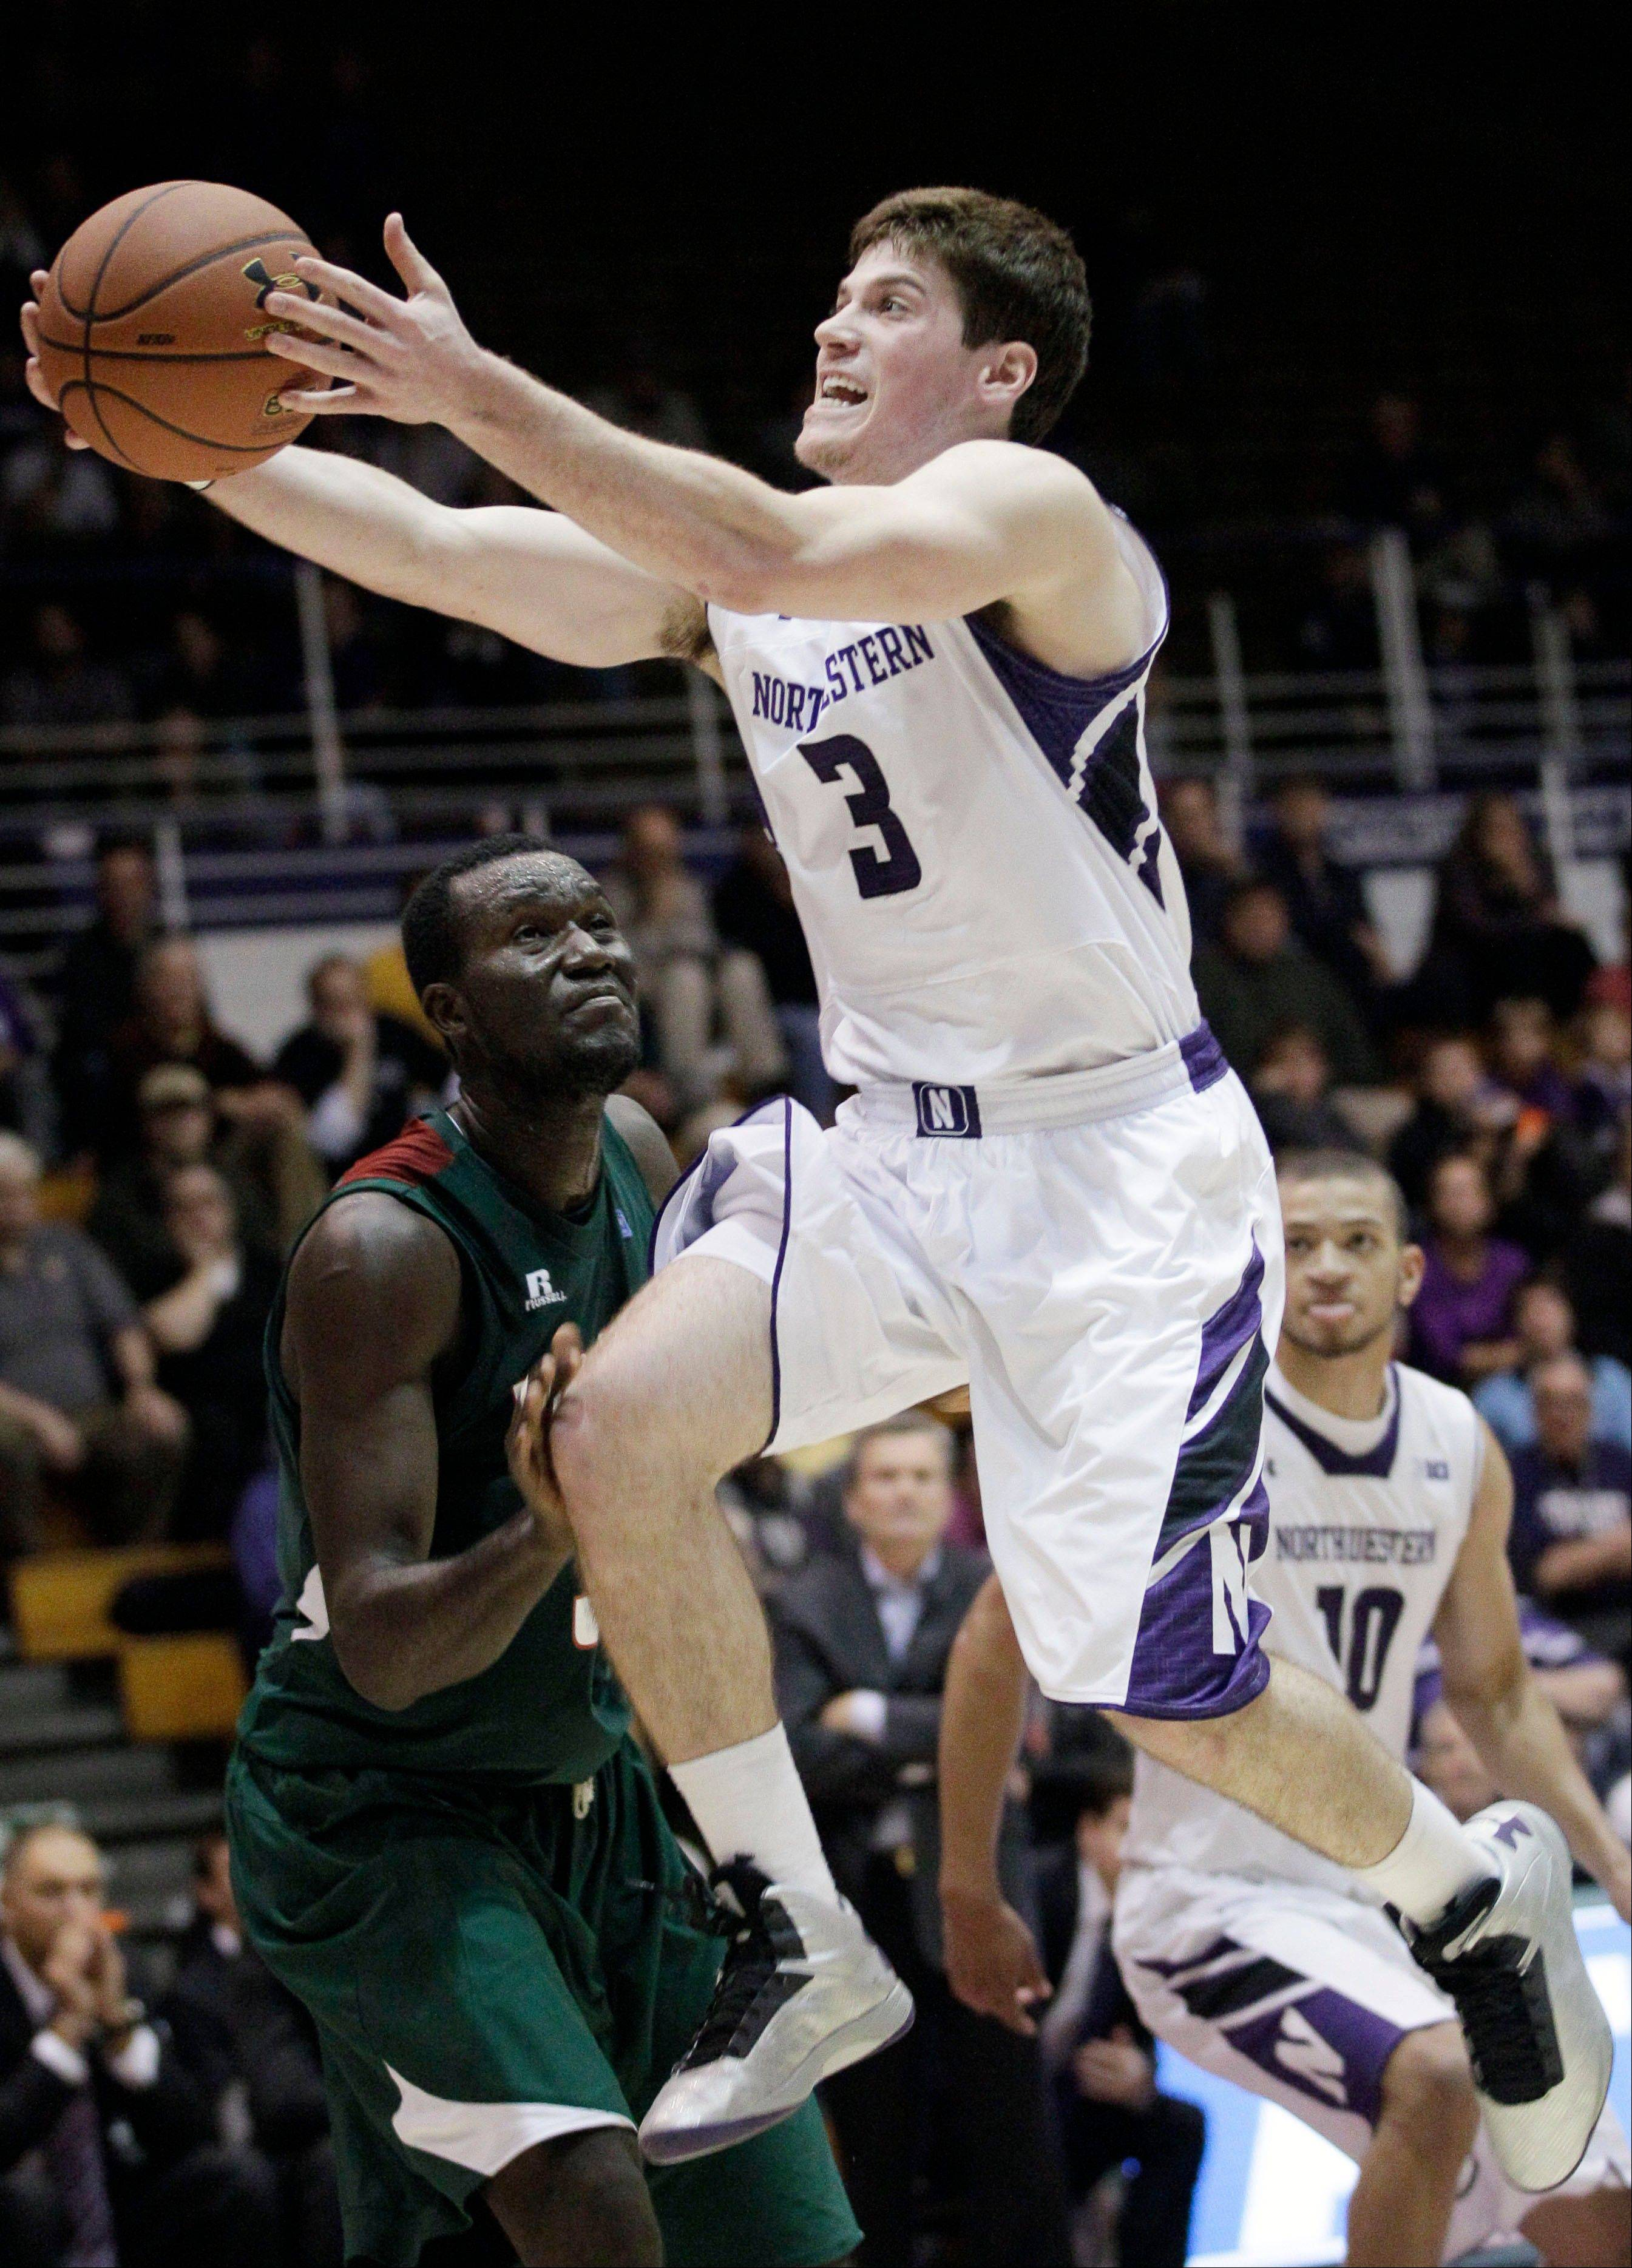 Northwestern guard Dave Sobolewski (3) drives to the basket as Mississippi Valley State center Julius Francis during the second half of an NCAA college basketball game in Evanston, Ill., on Thursday, Nov. 15, 2012. Northwestern won 81-68. (AP Photo/Nam Y. Huh)